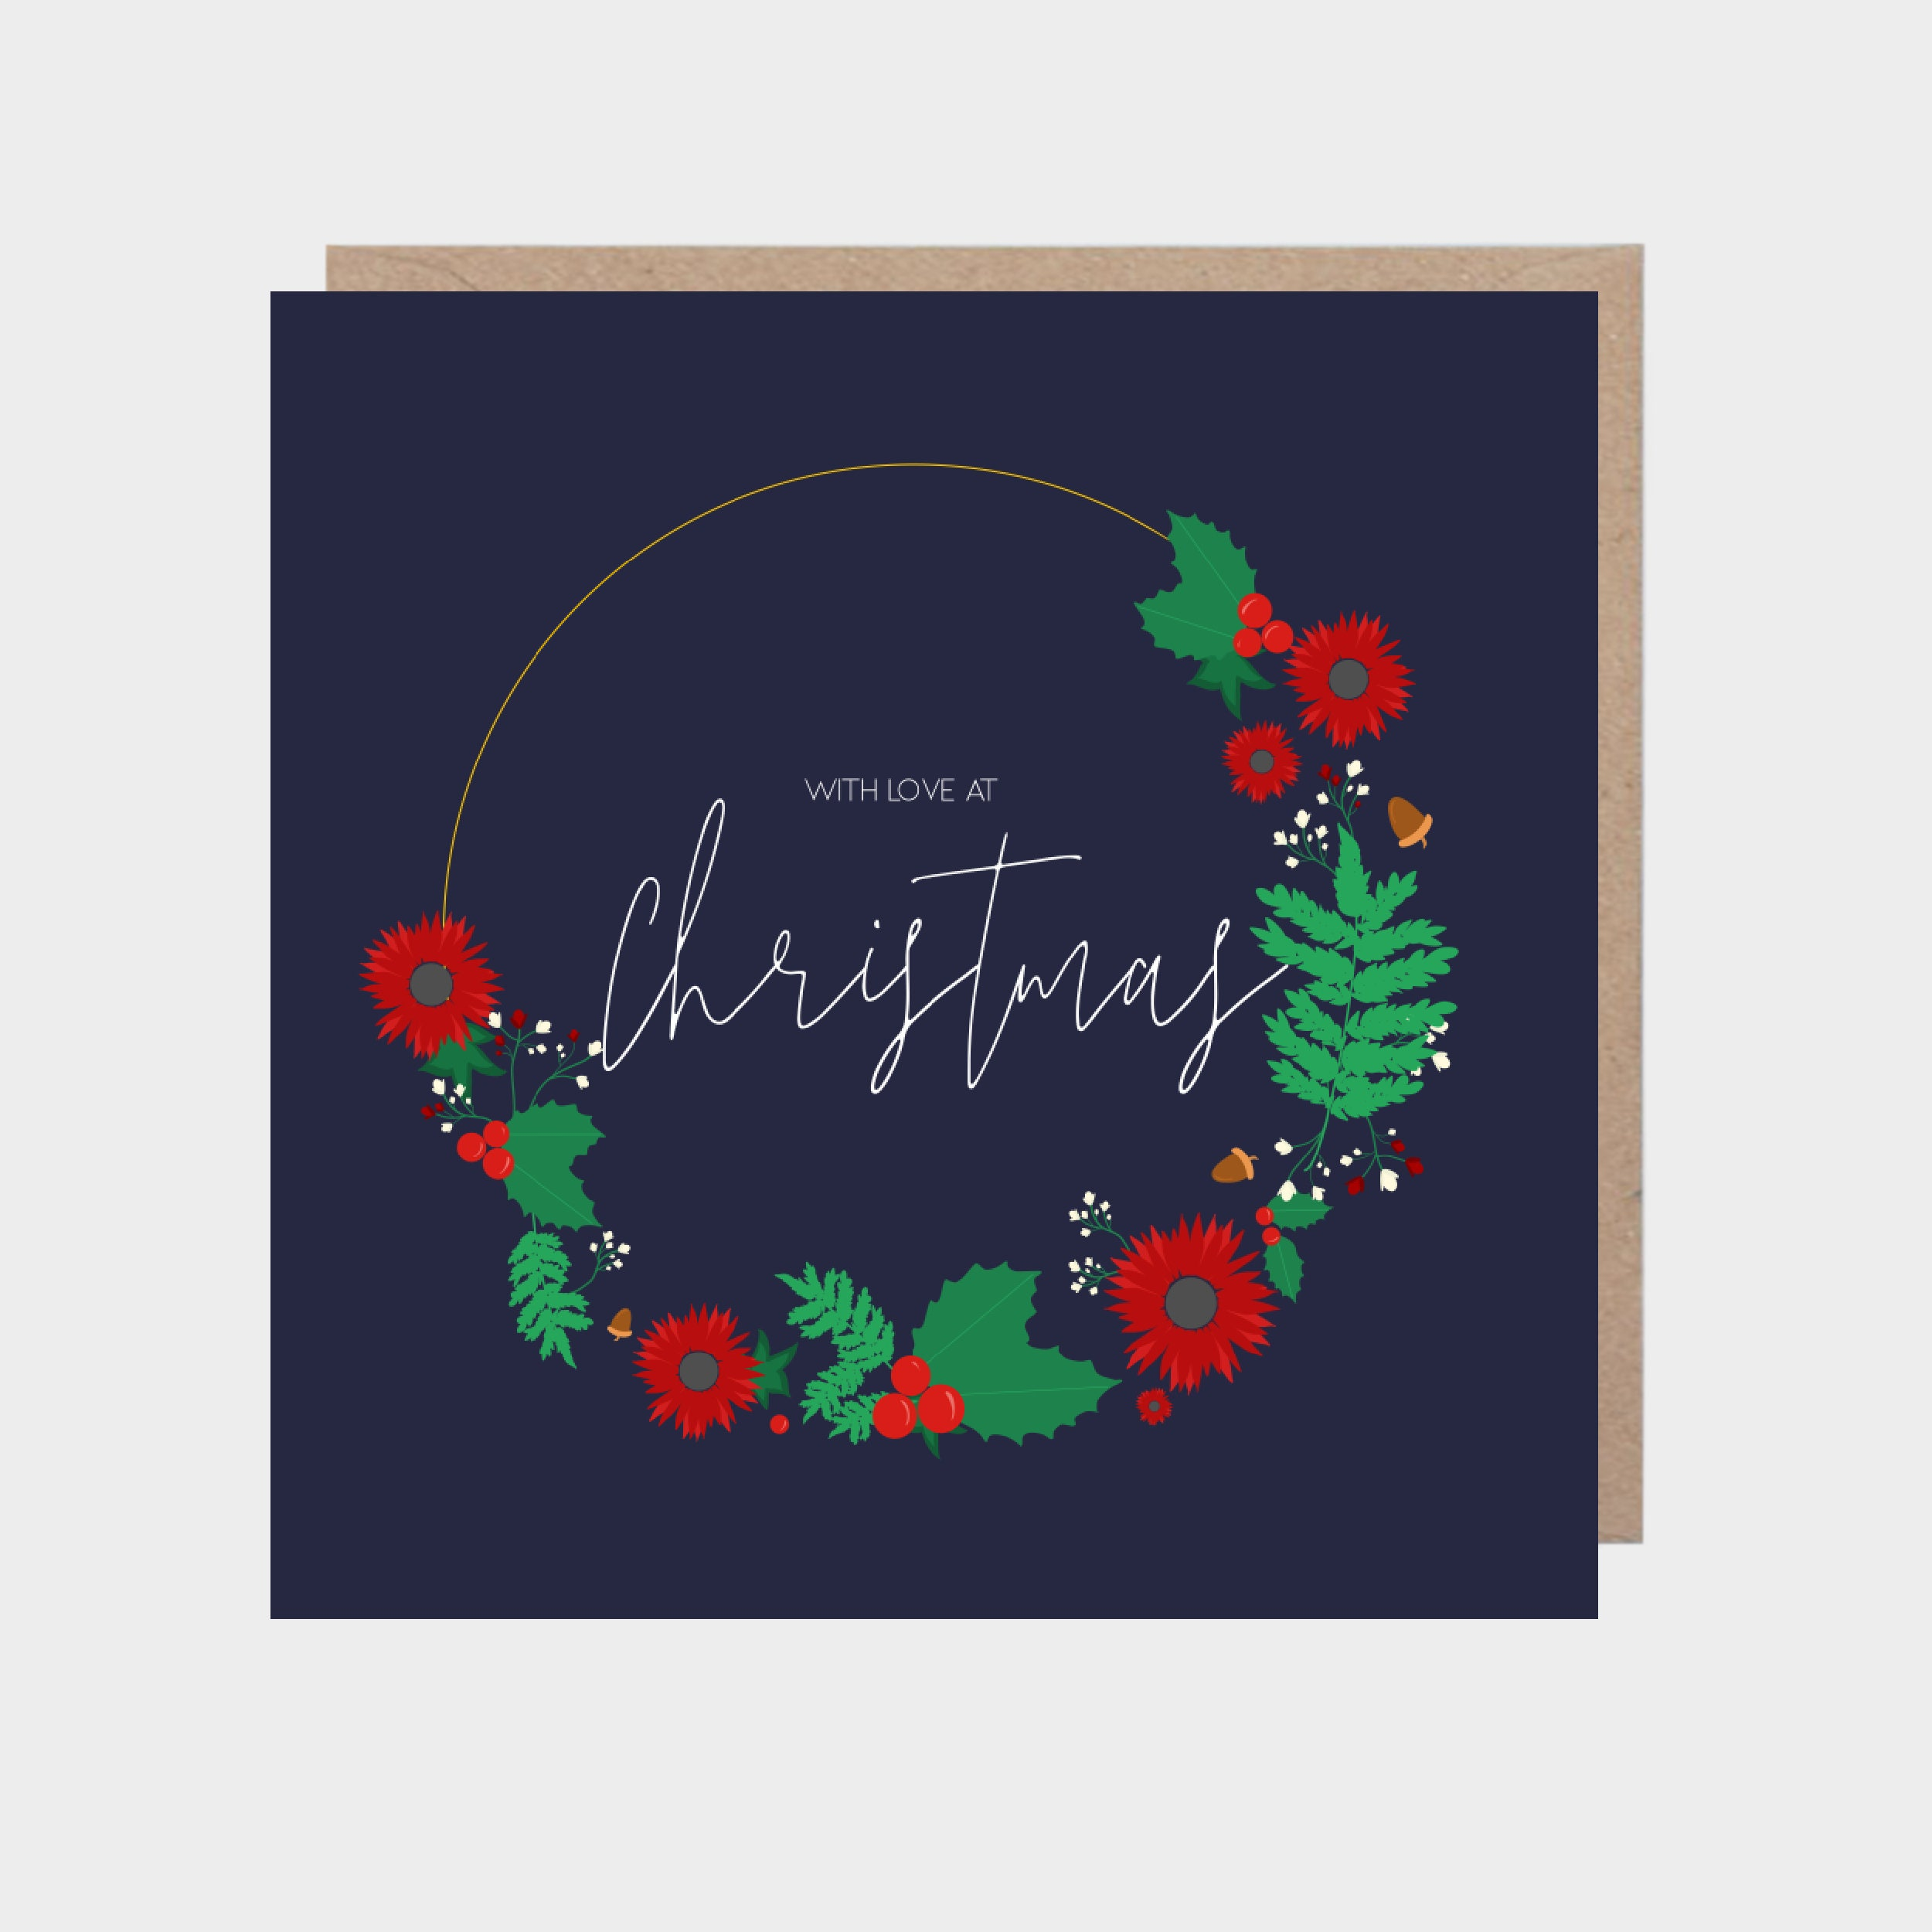 Dark blue illustrated Christmas wreath card, with a brown kraft envelope